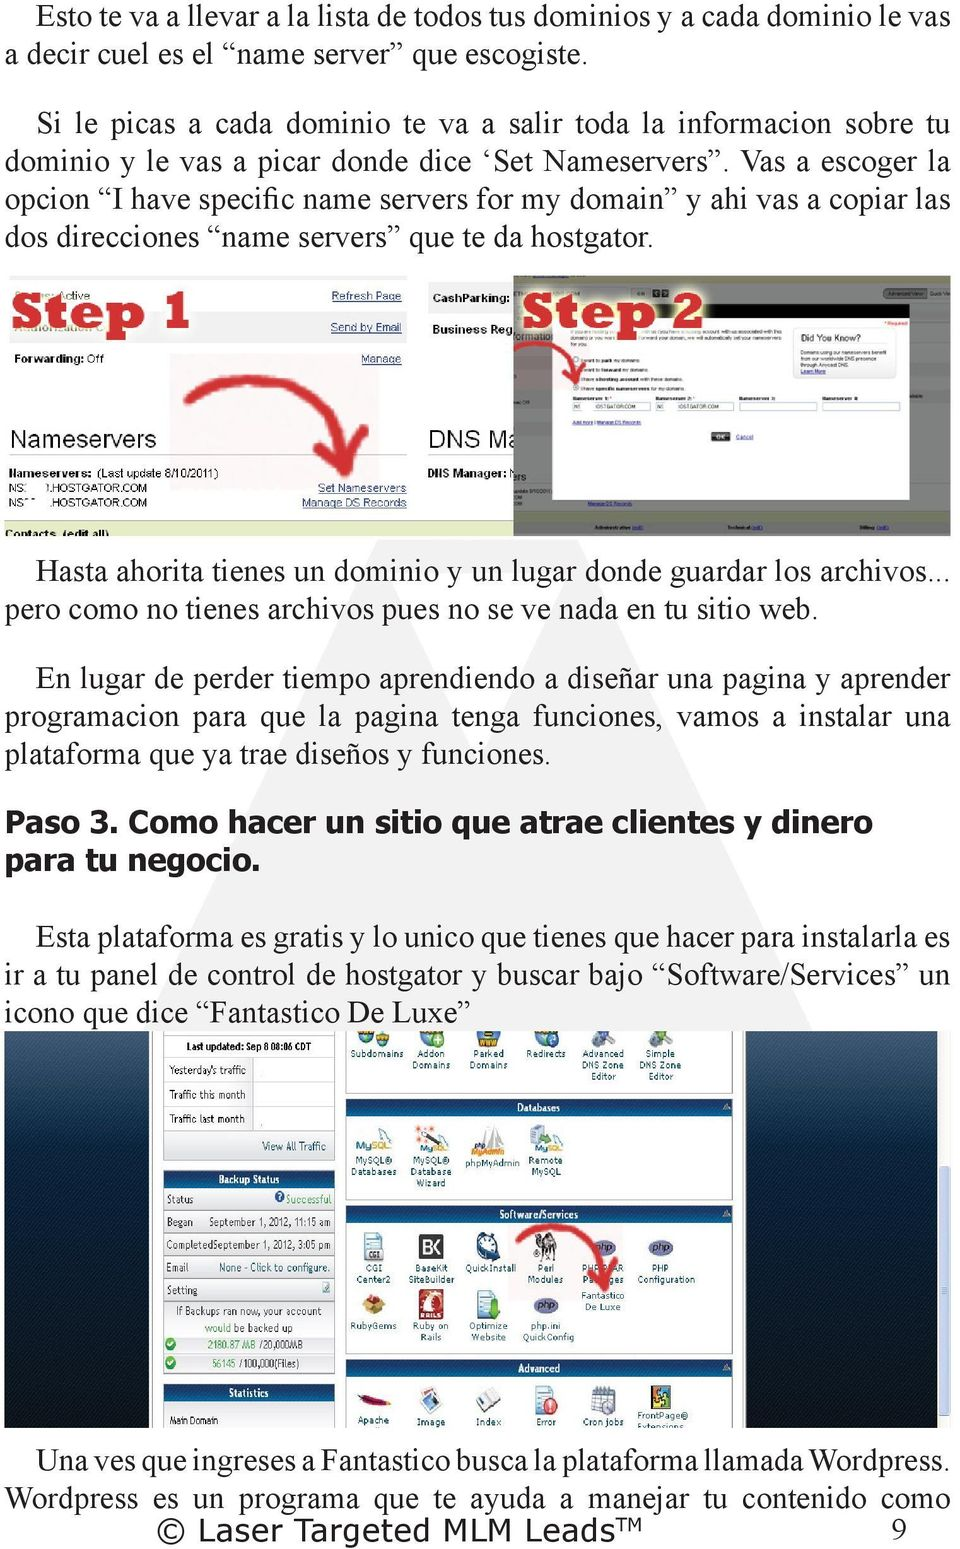 Vas a escoger la opcion I have specific name servers for my domain y ahi vas a copiar las dos direcciones name servers que te da hostgator.